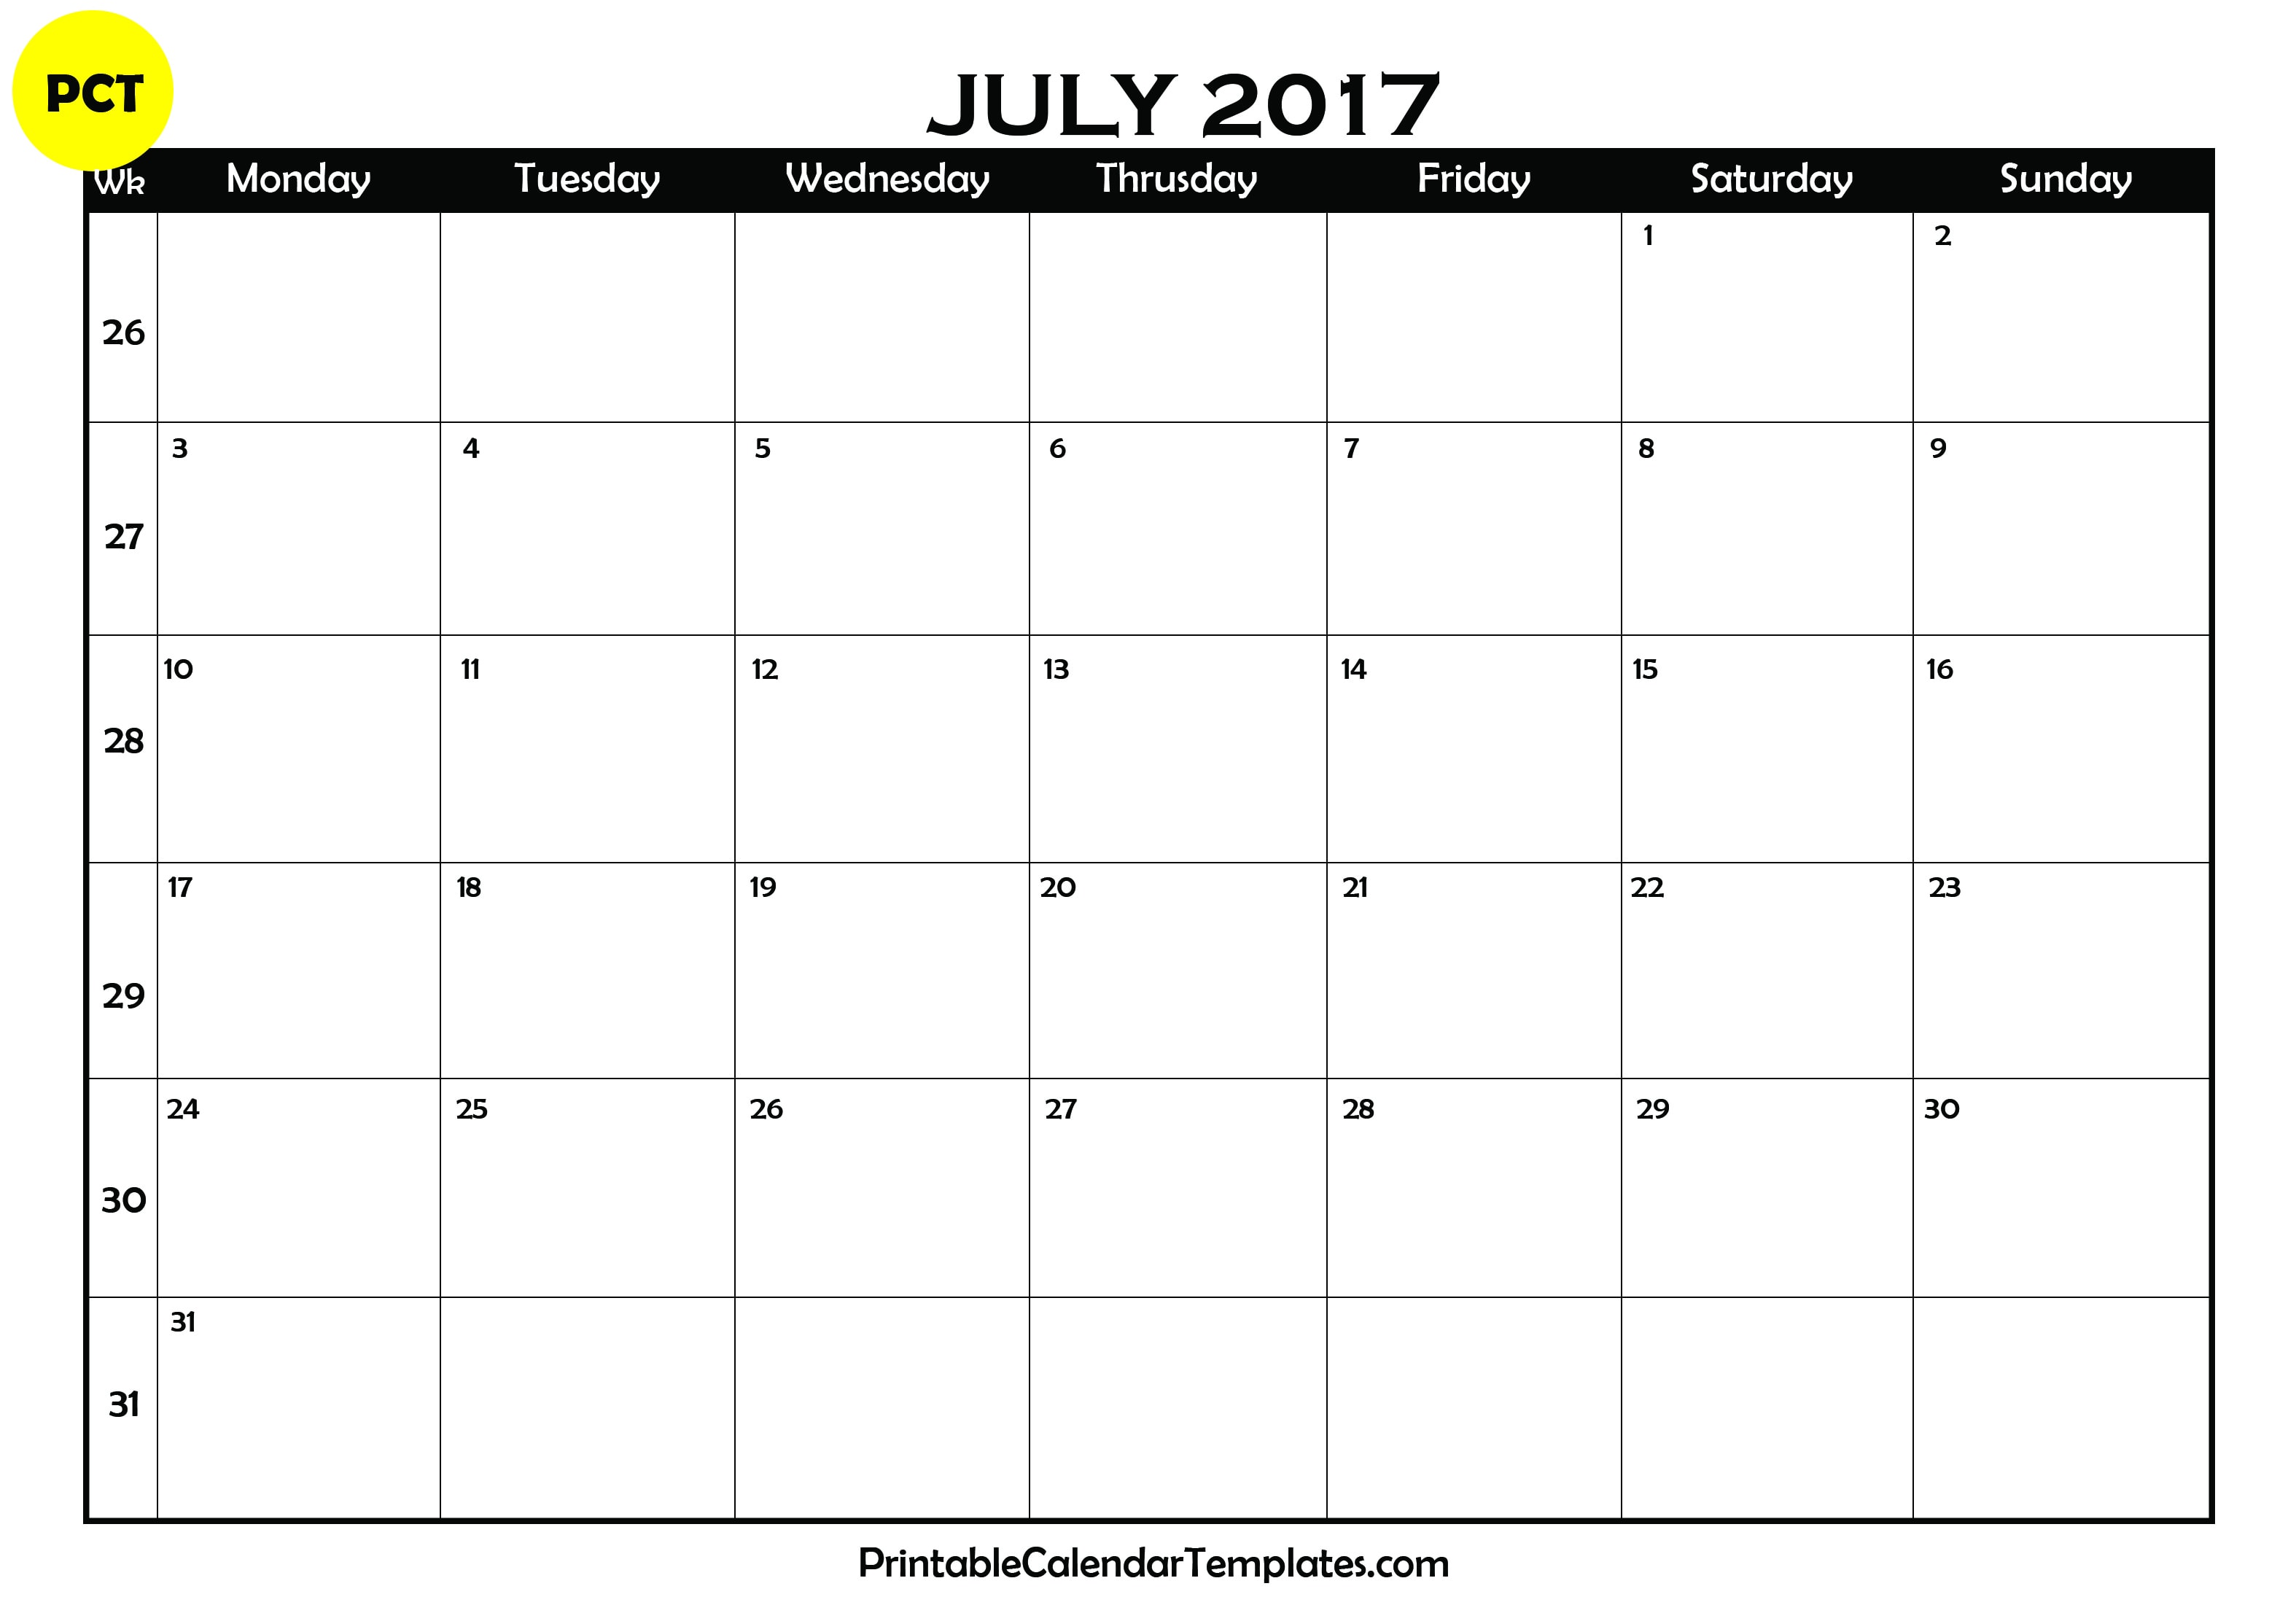 Blank Calendar 2017 : July calendar printable templates